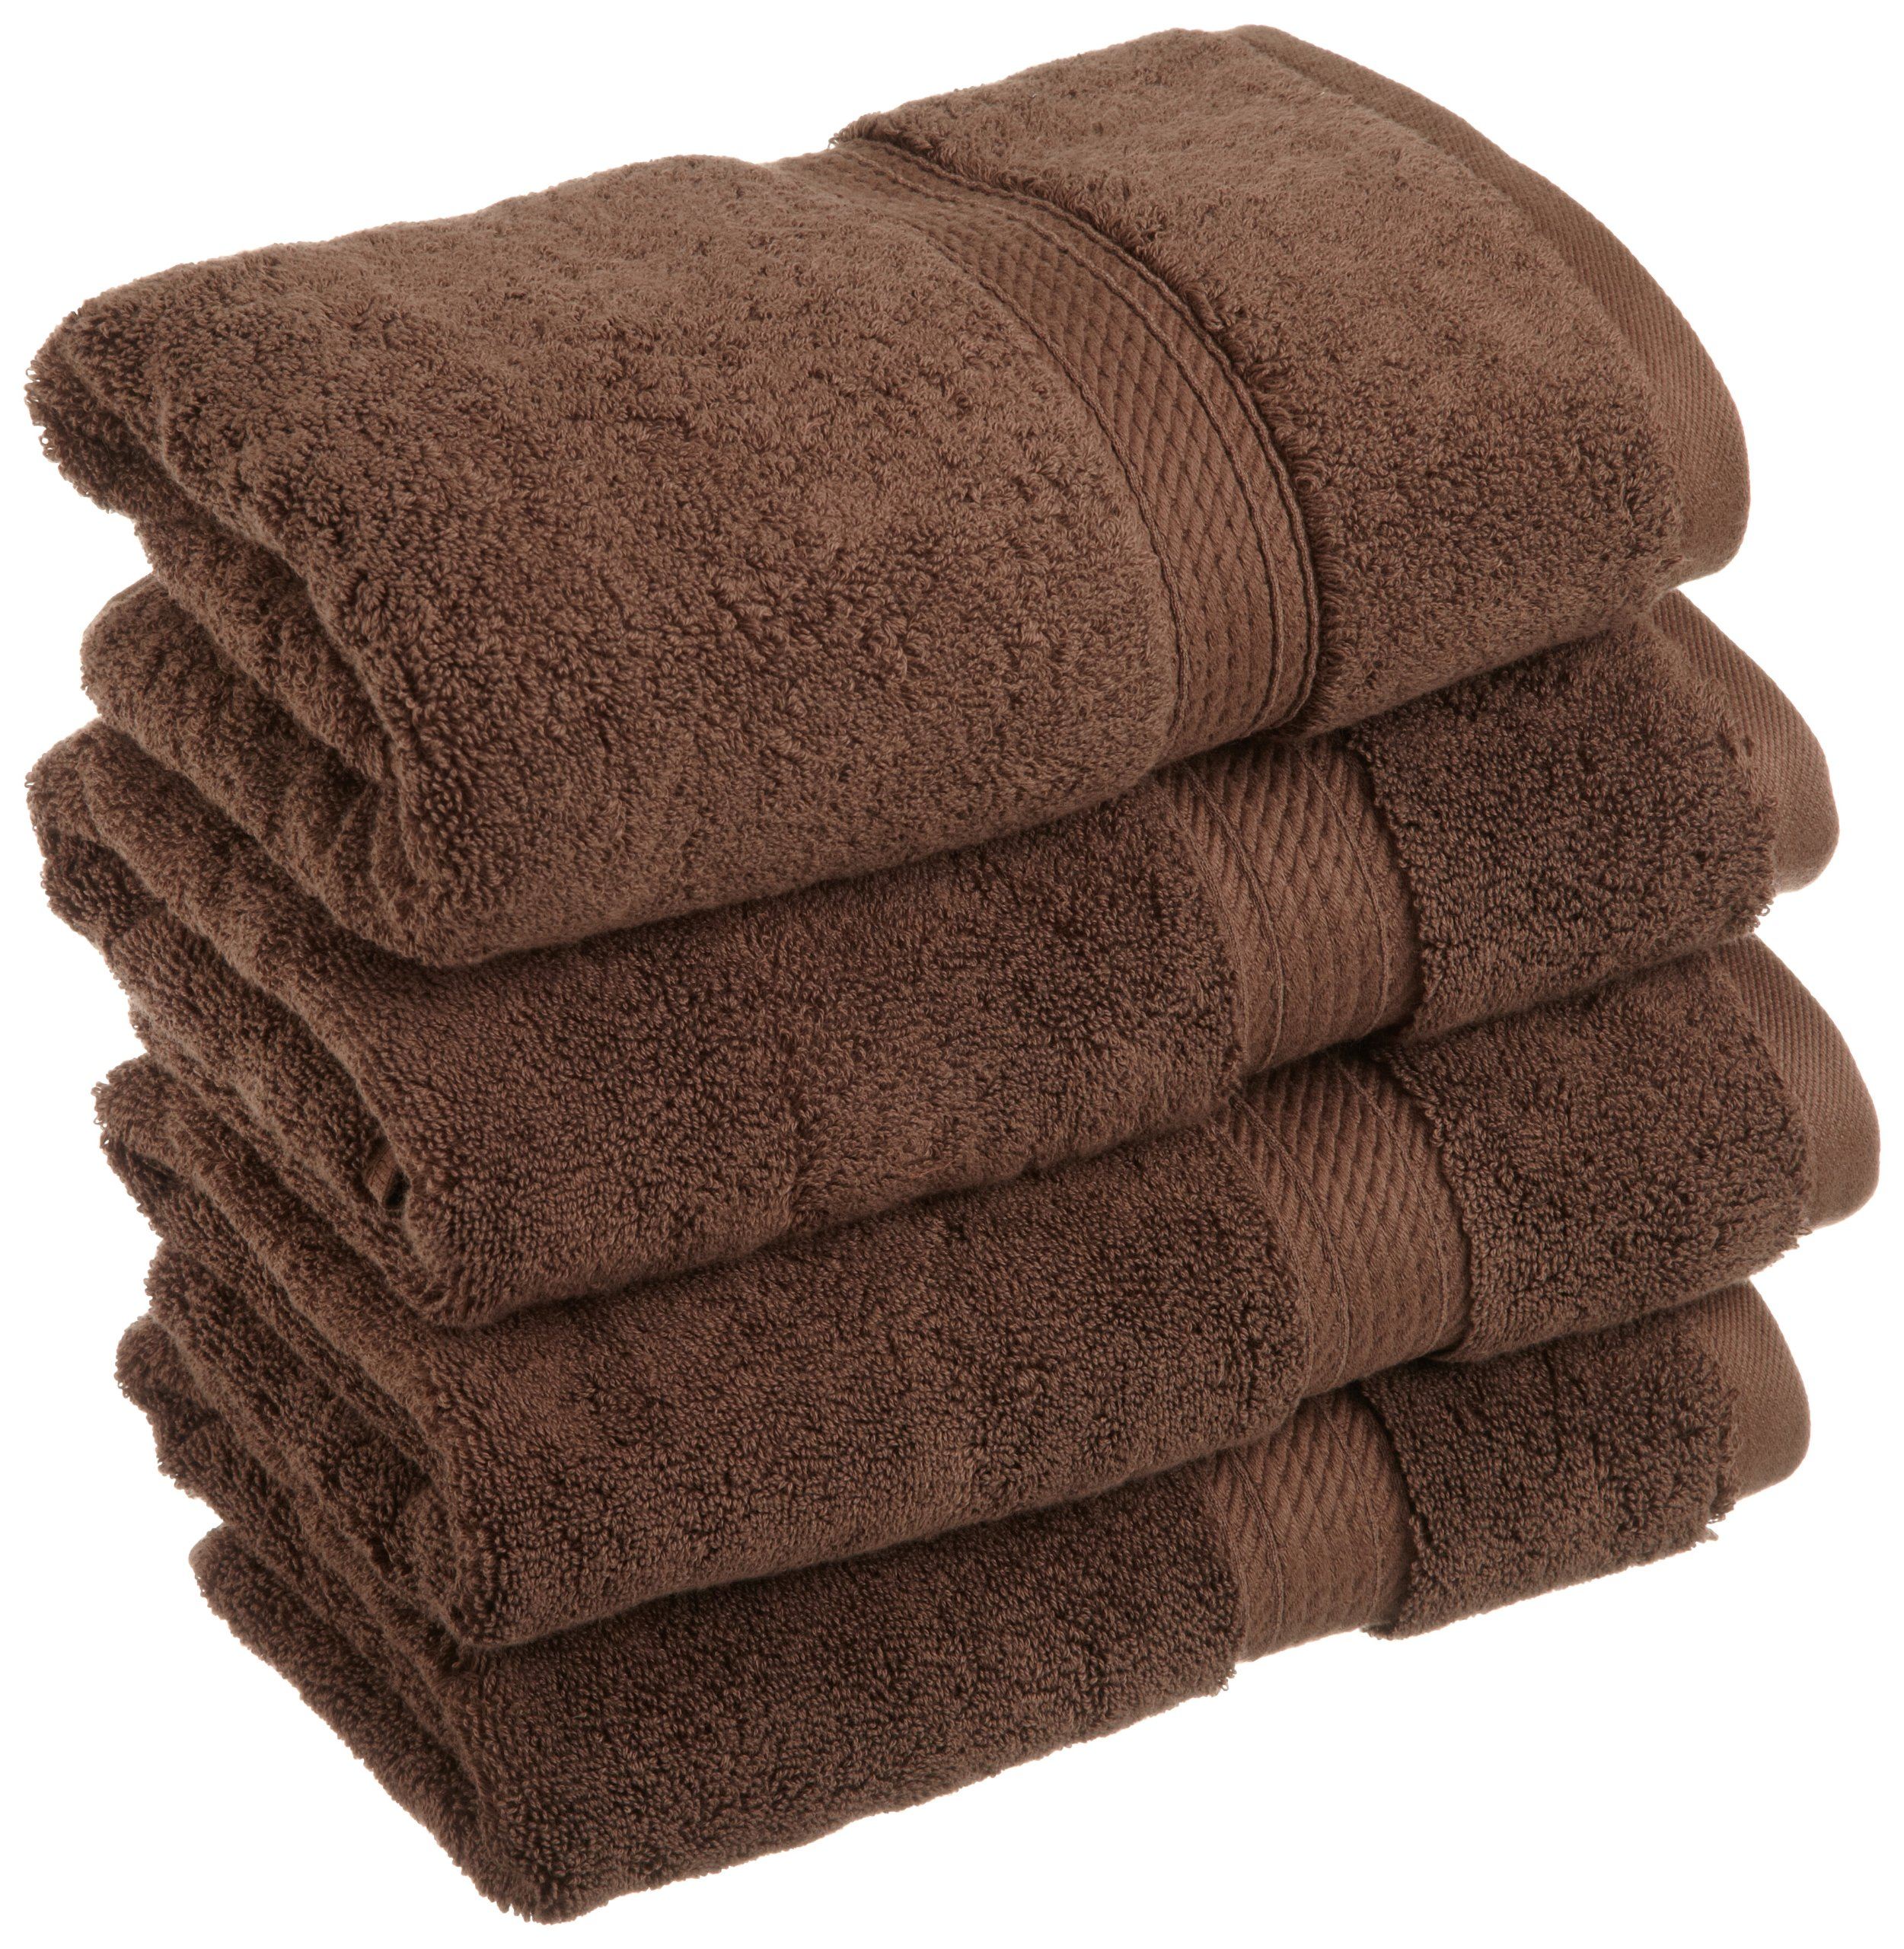 Superior 900 GSM Luxury Bathroom Hand Towels, Made of 100% Premium Long-Staple Combed Cotton, Set of 4 Hotel & Spa Quality Hand Towels - Chocolate, 20'' x 30'' each